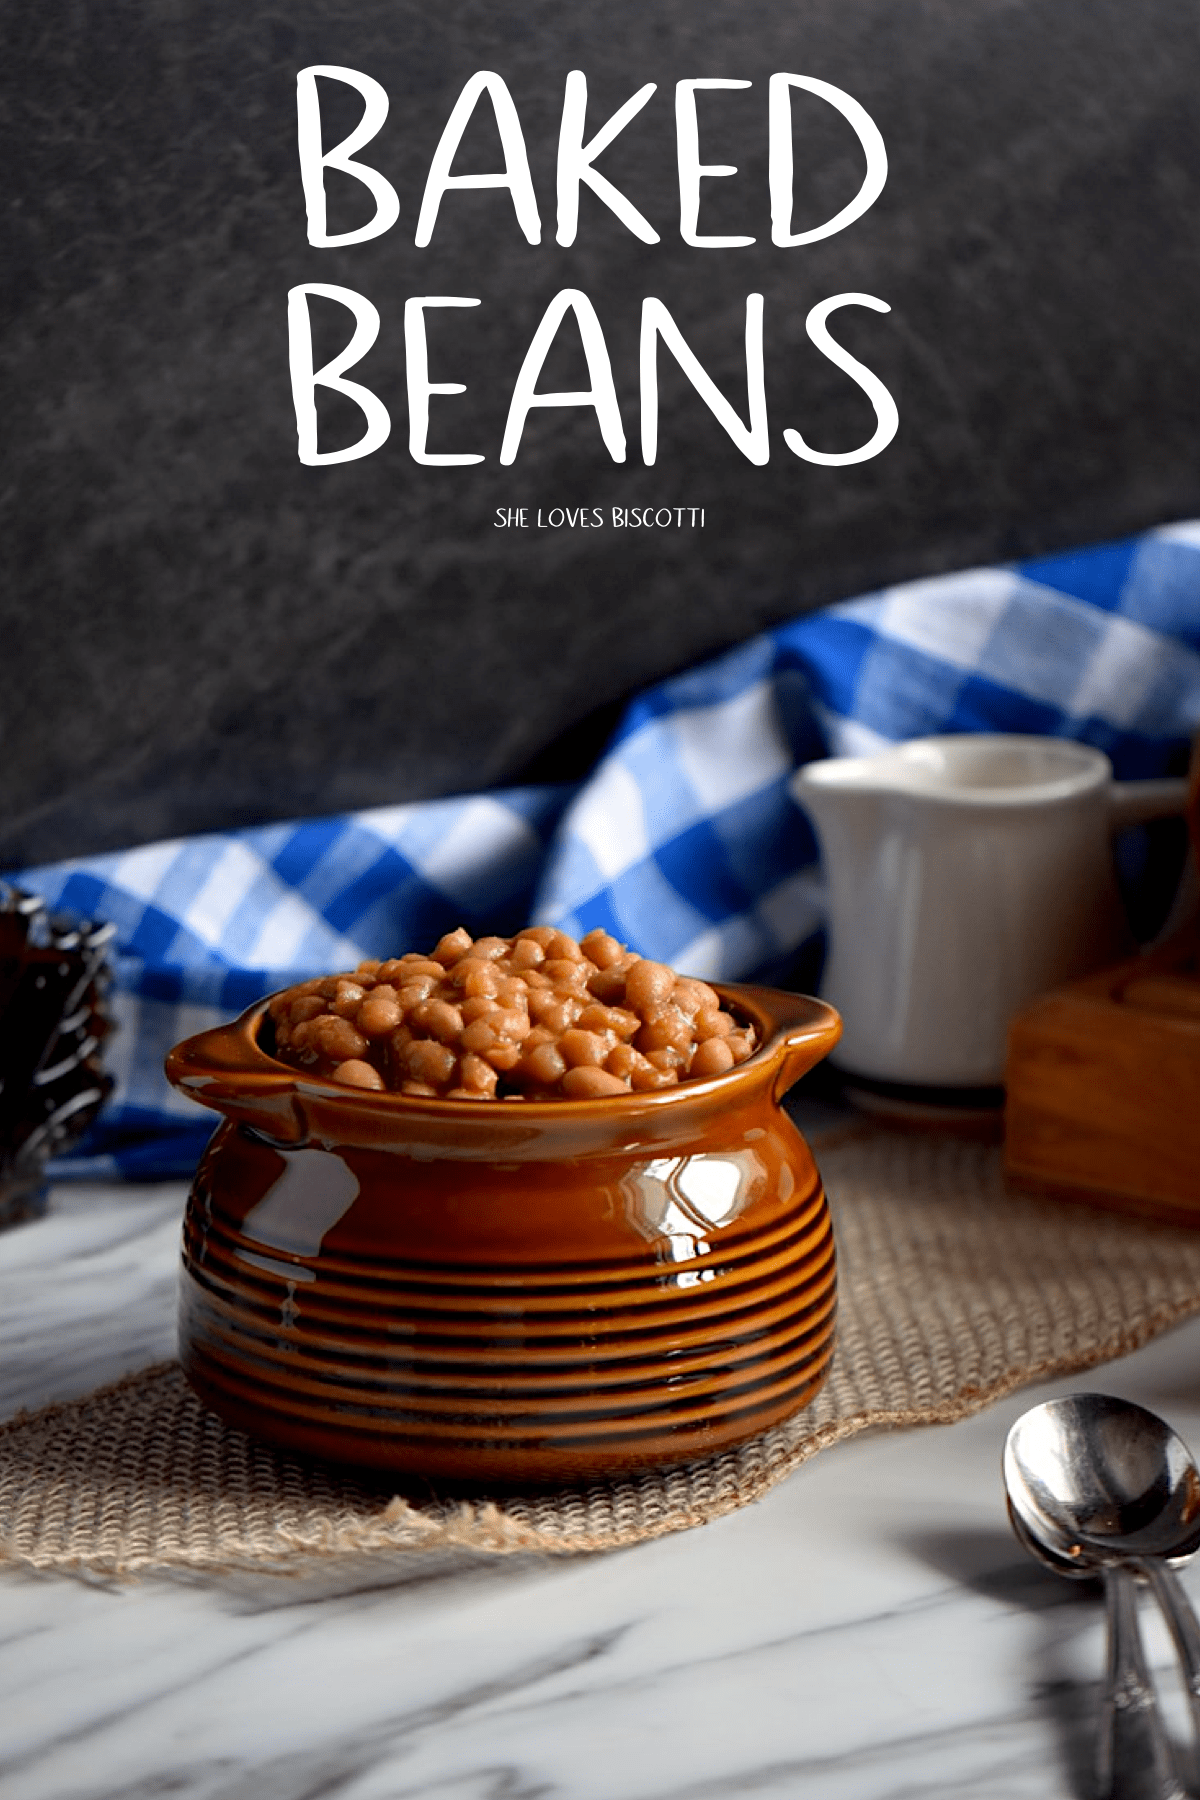 You won't believe how easy it is to make baked beans from scratch. This Maple Baked Beans is the perfect recipe.  #shelovesbiscotti  #bakedbeans #maplebakedbeans #crockpot #slowcooker #sides #BBQ #sidedish #cleaneating